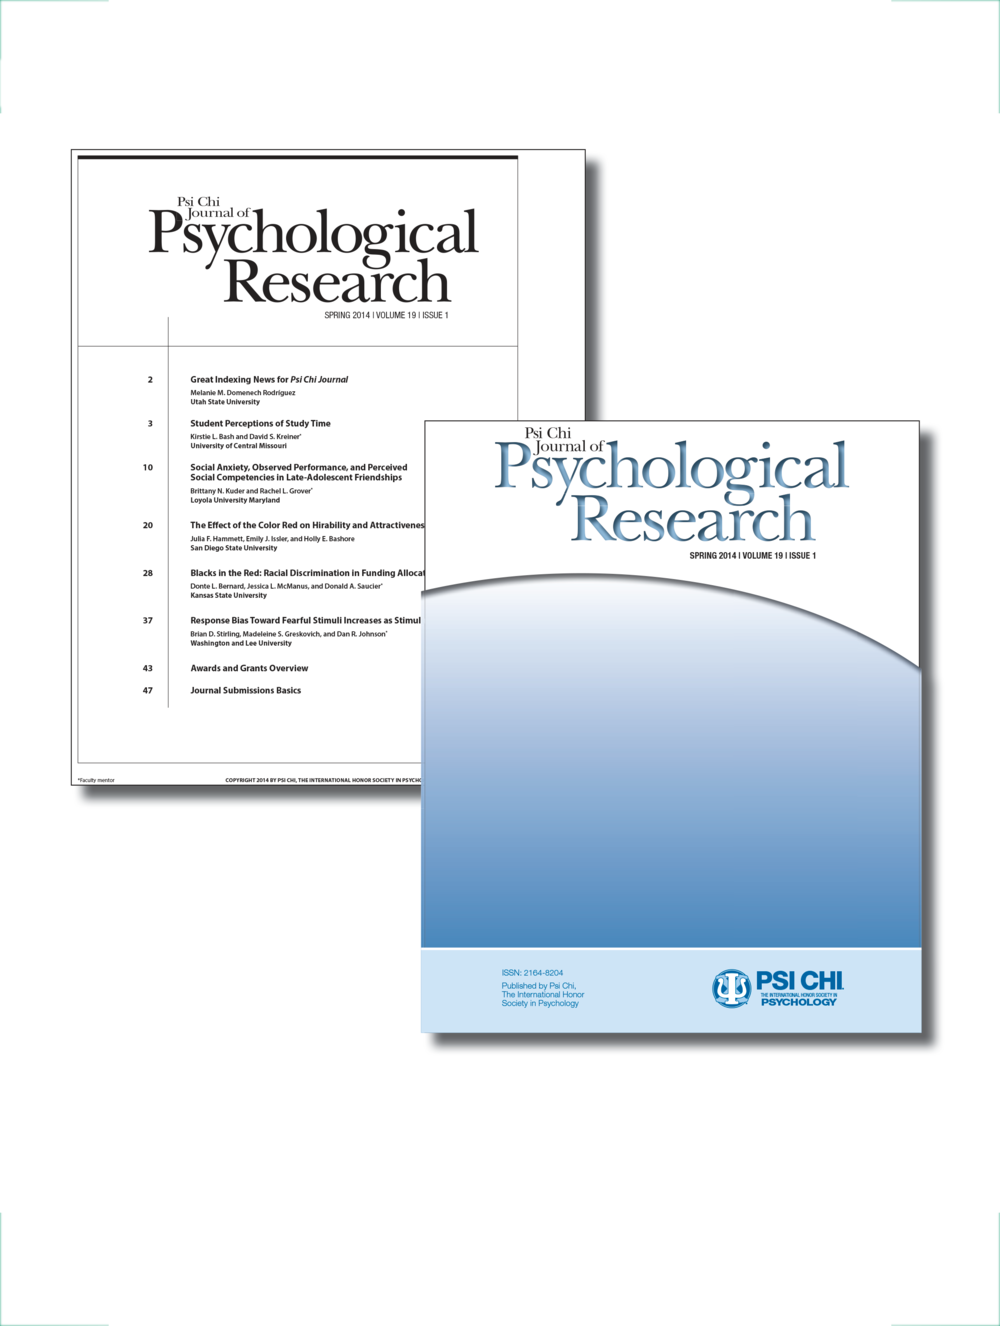 Psi Chi Journal of Psychological Research Table of Contents